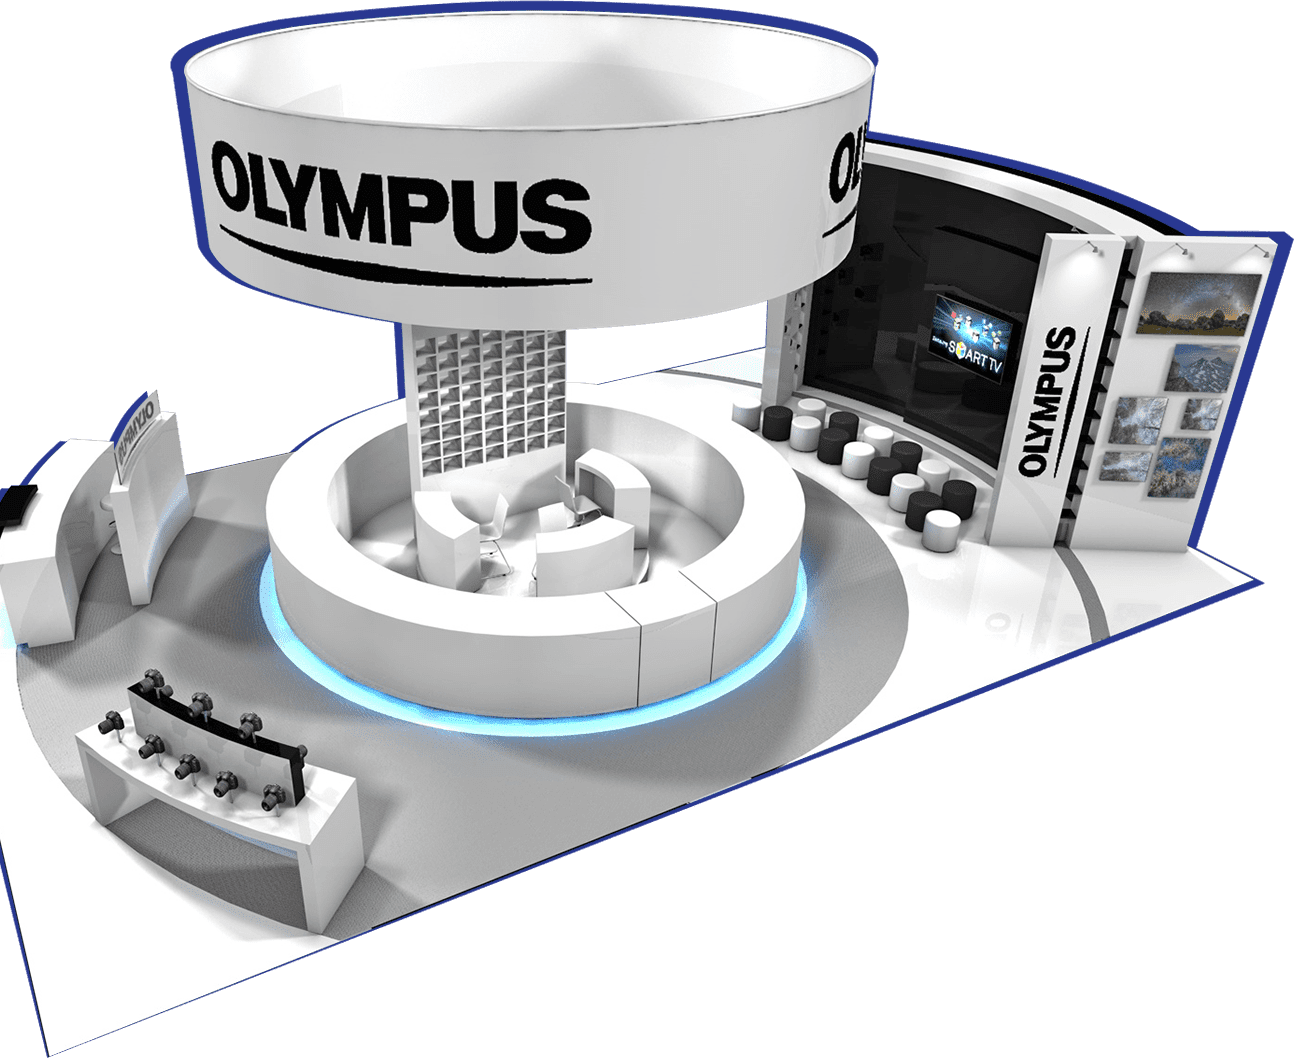 olympus-stand